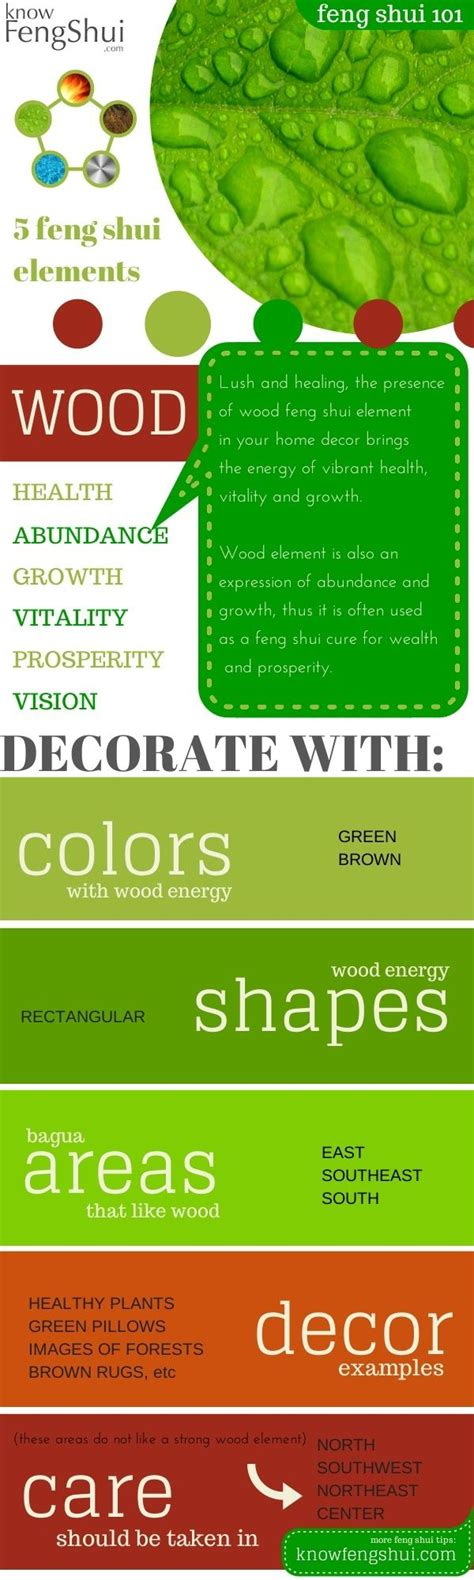 feng shui decorating 25 best ideas about feng shui decorating on pinterest feng shui bedroom feng shui and feng